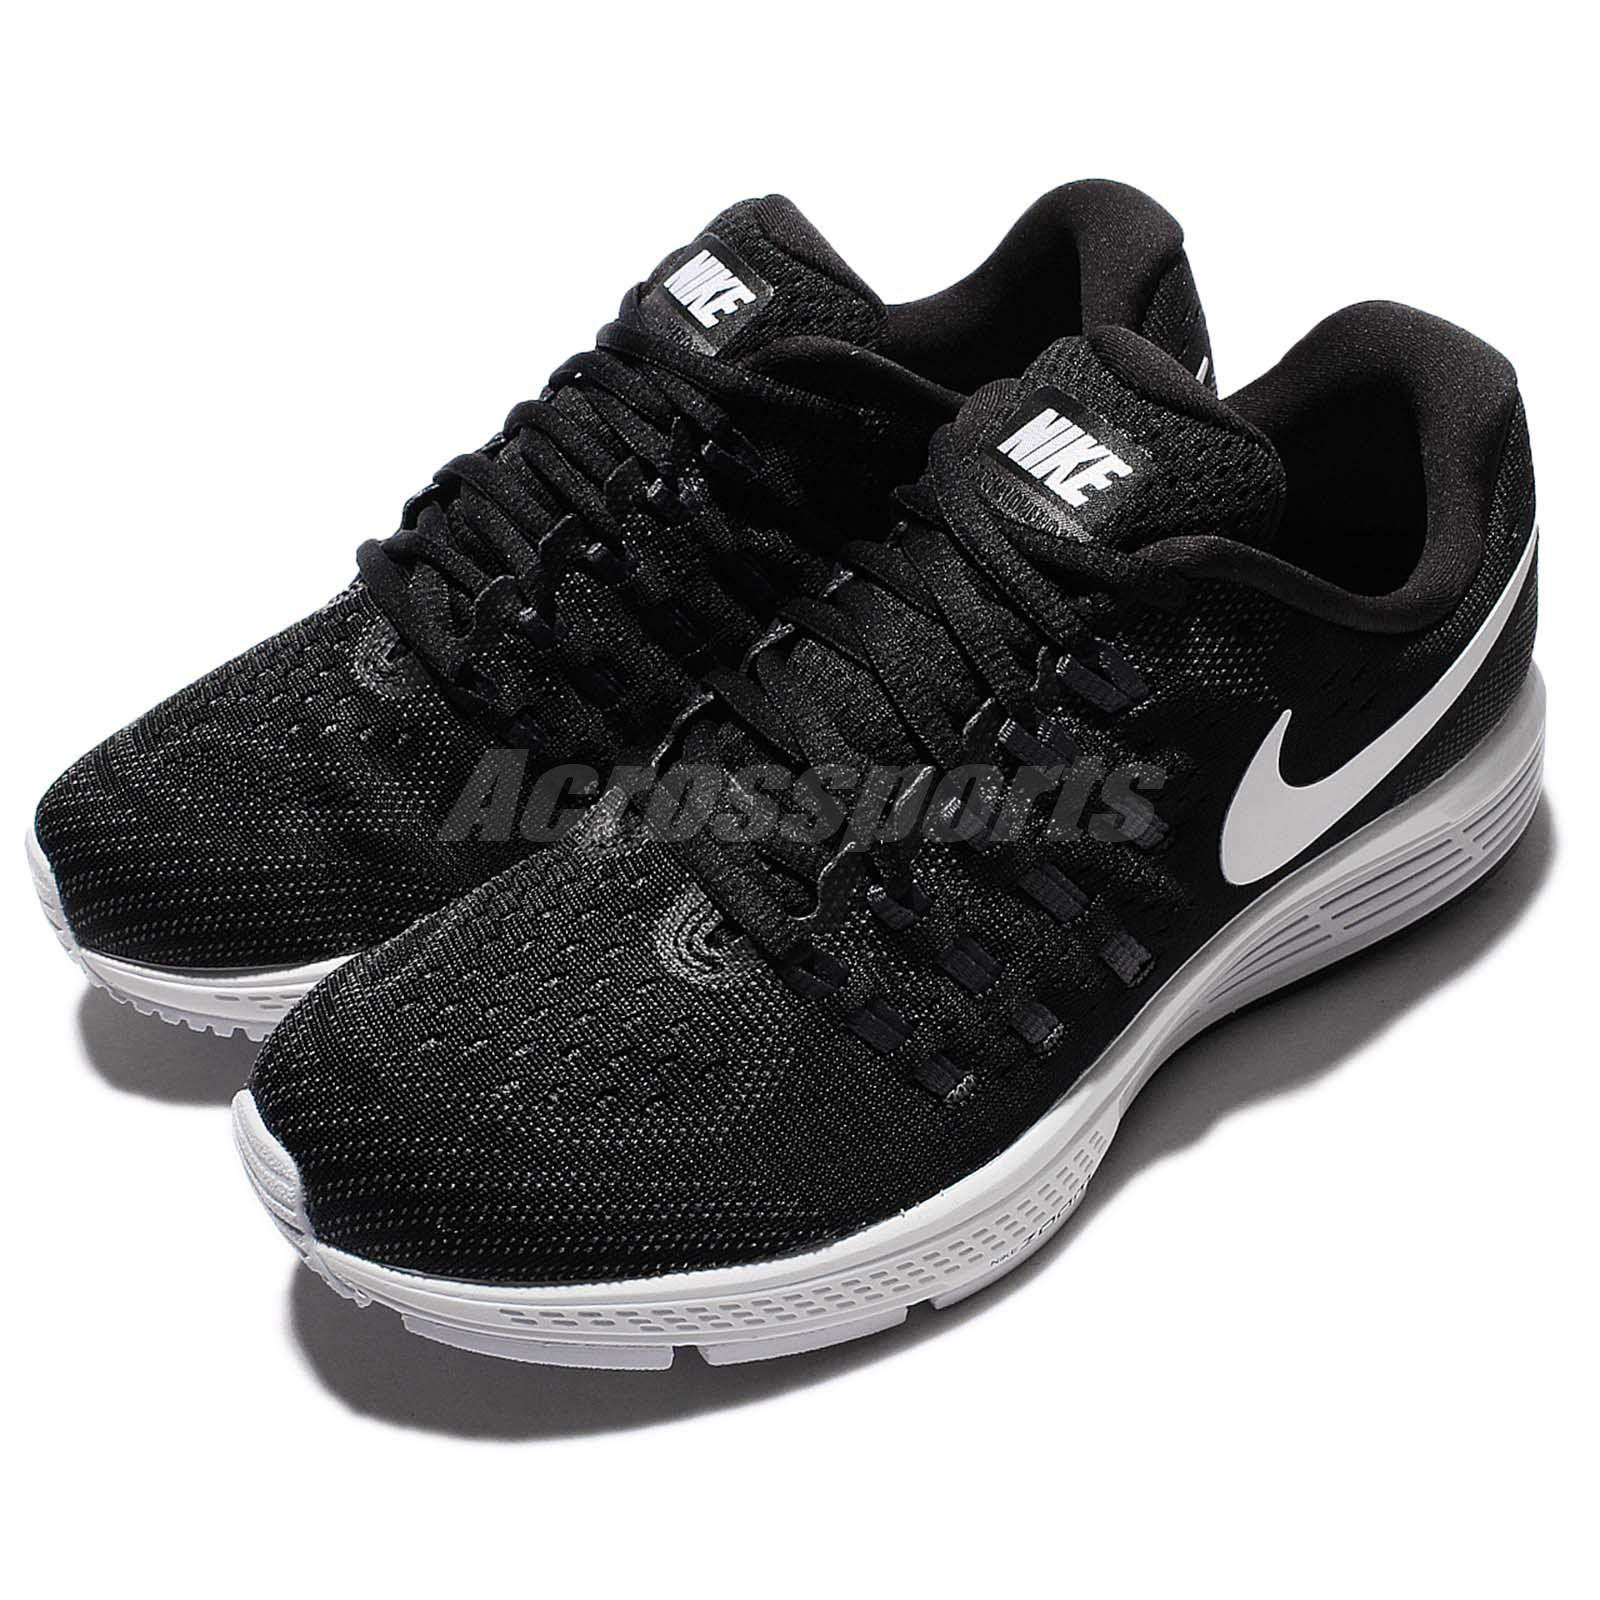 13149288489 Details about Wmns Nike Air Zoom Vomero 11 Black White Women Running Shoes  Sneakers 818100-001